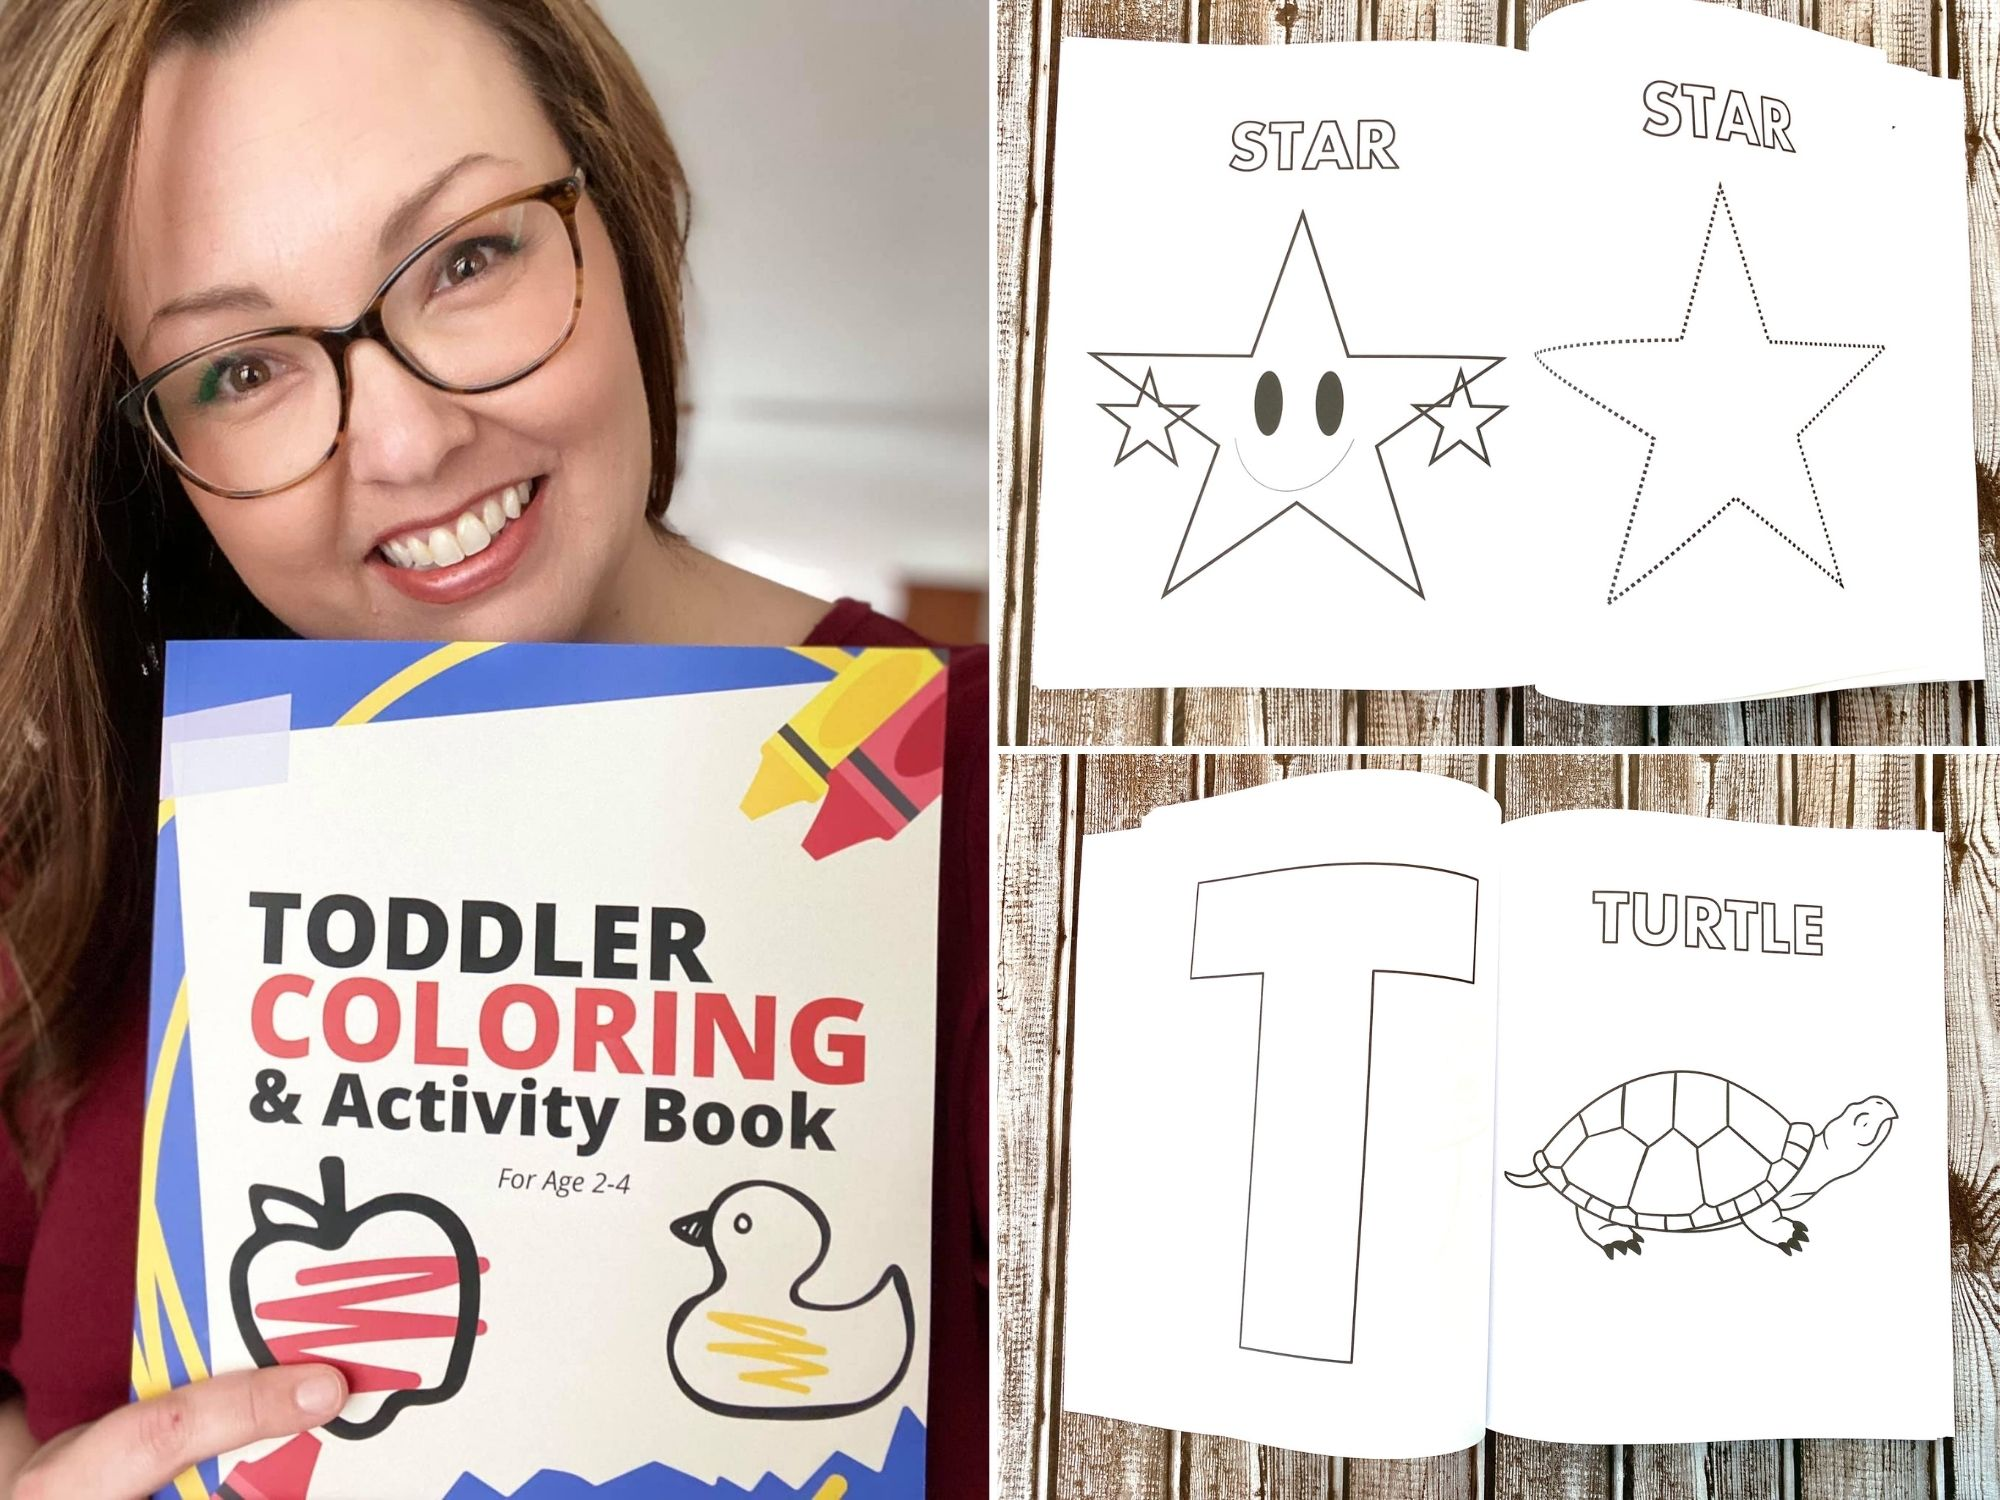 Toddler Coloring and Activity Book